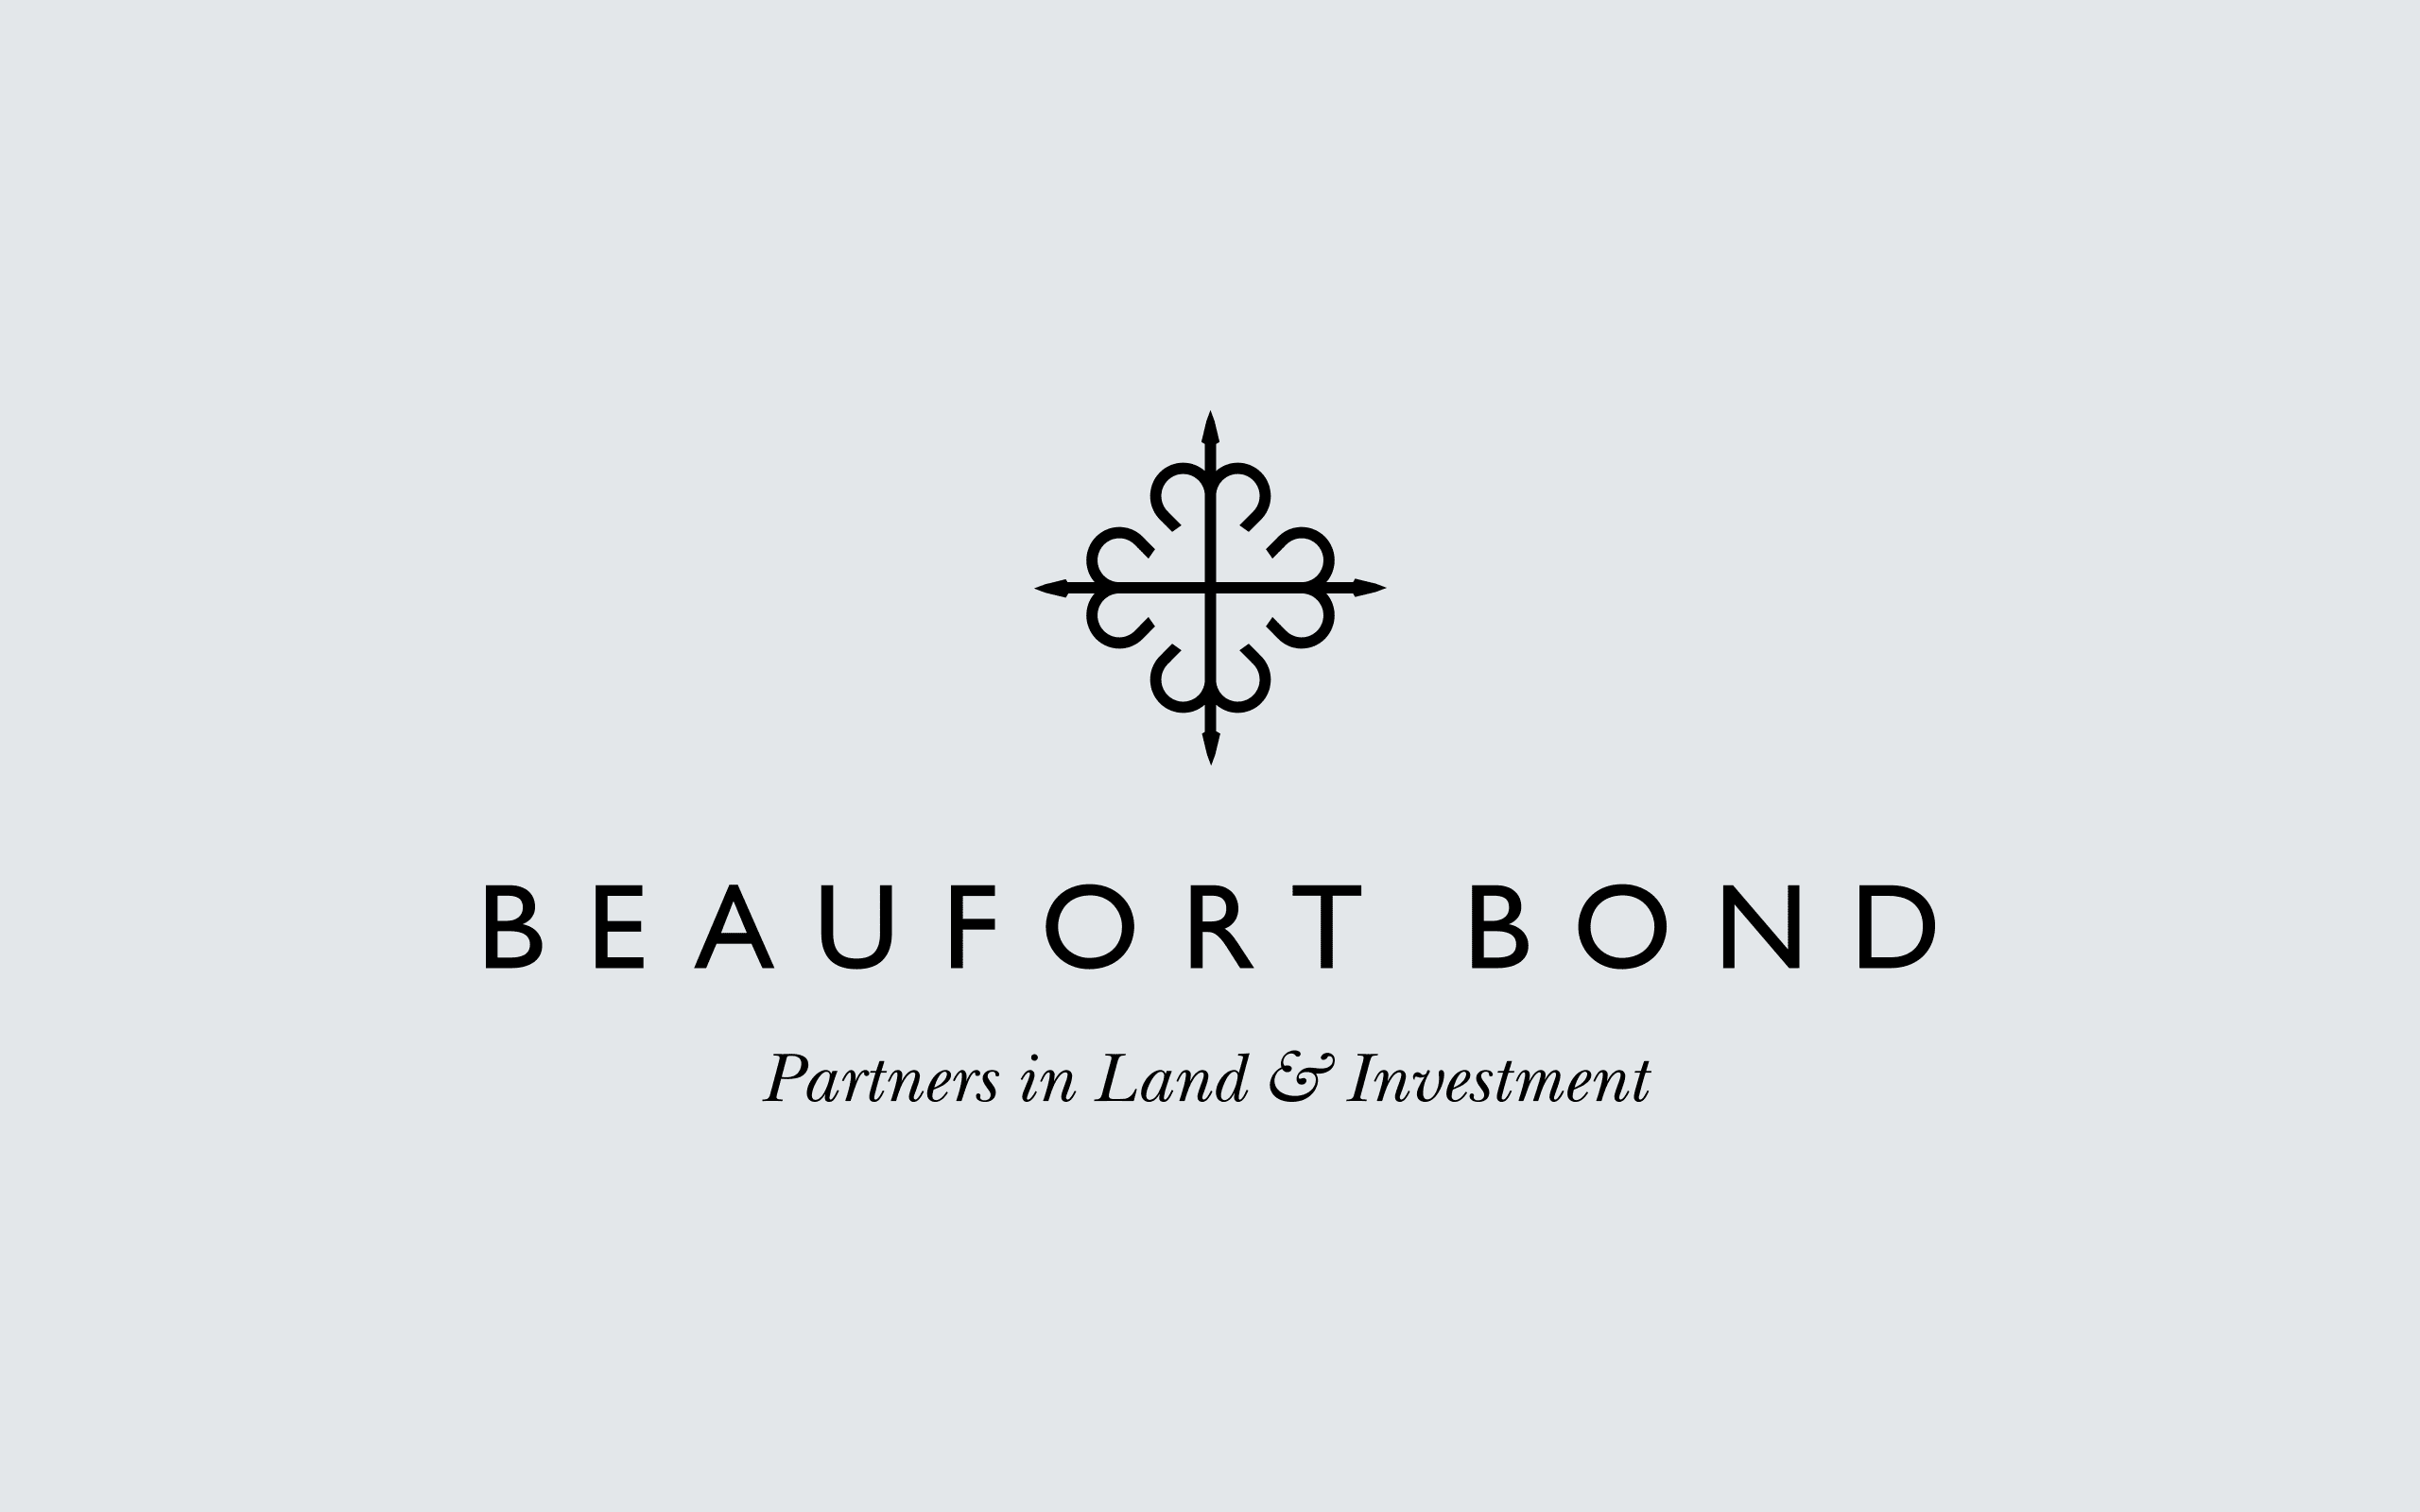 Beaufort Bond logo | Zeke Creative